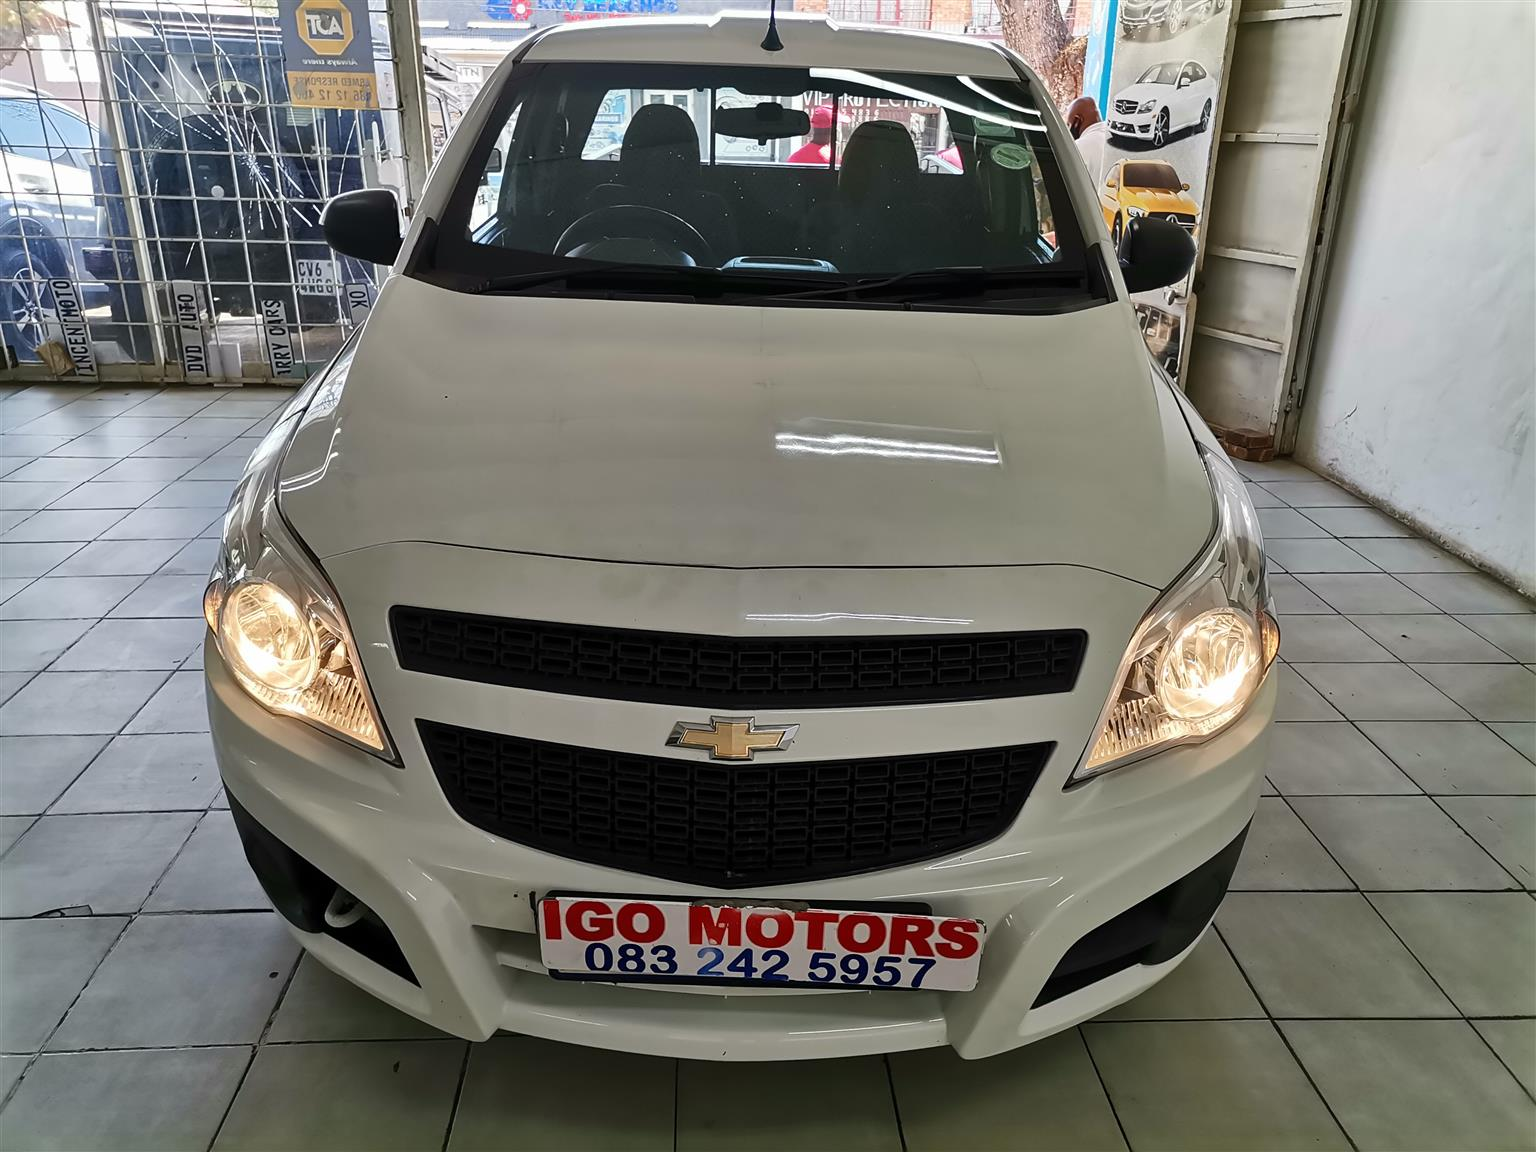 2015 Chevrolet utility 1.4 Ute Force manual Mechanically perfect